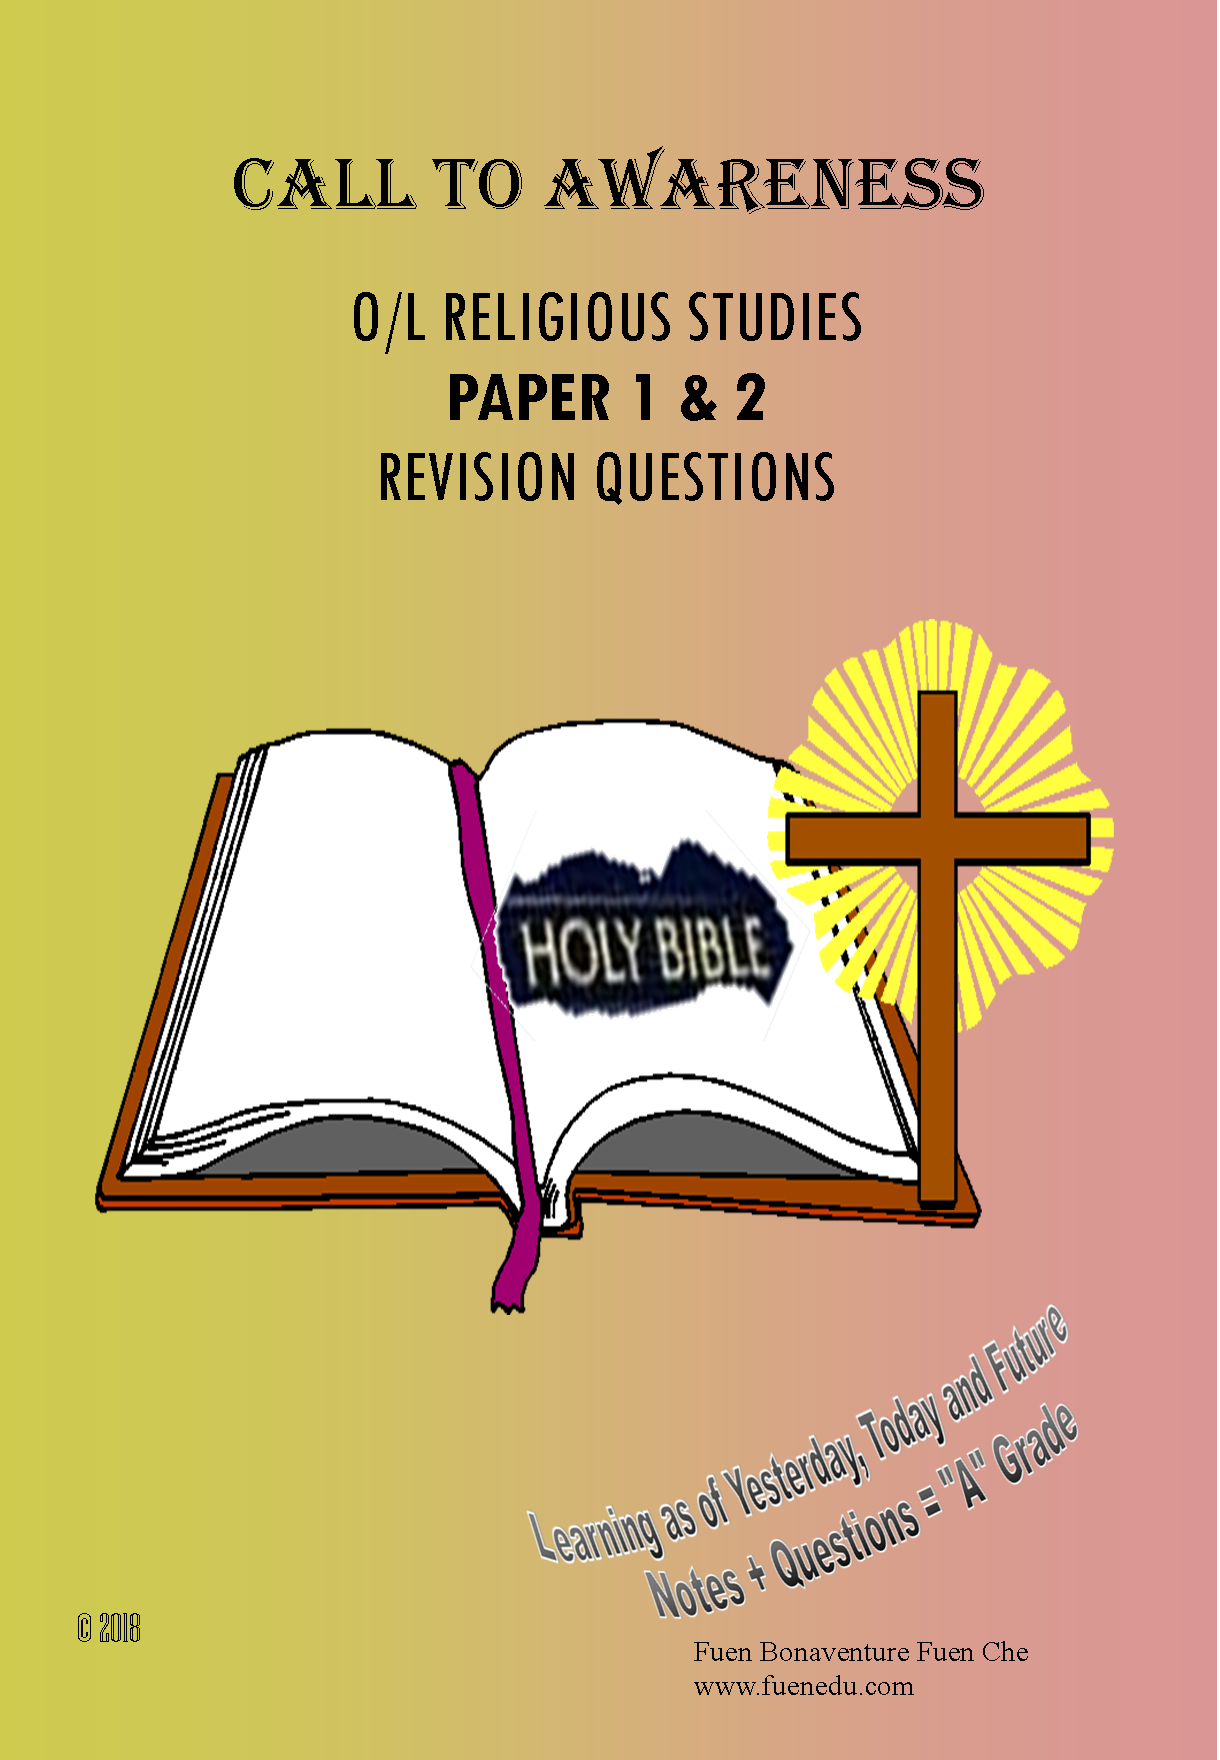 Revision Questions for O/L Religious Studies.